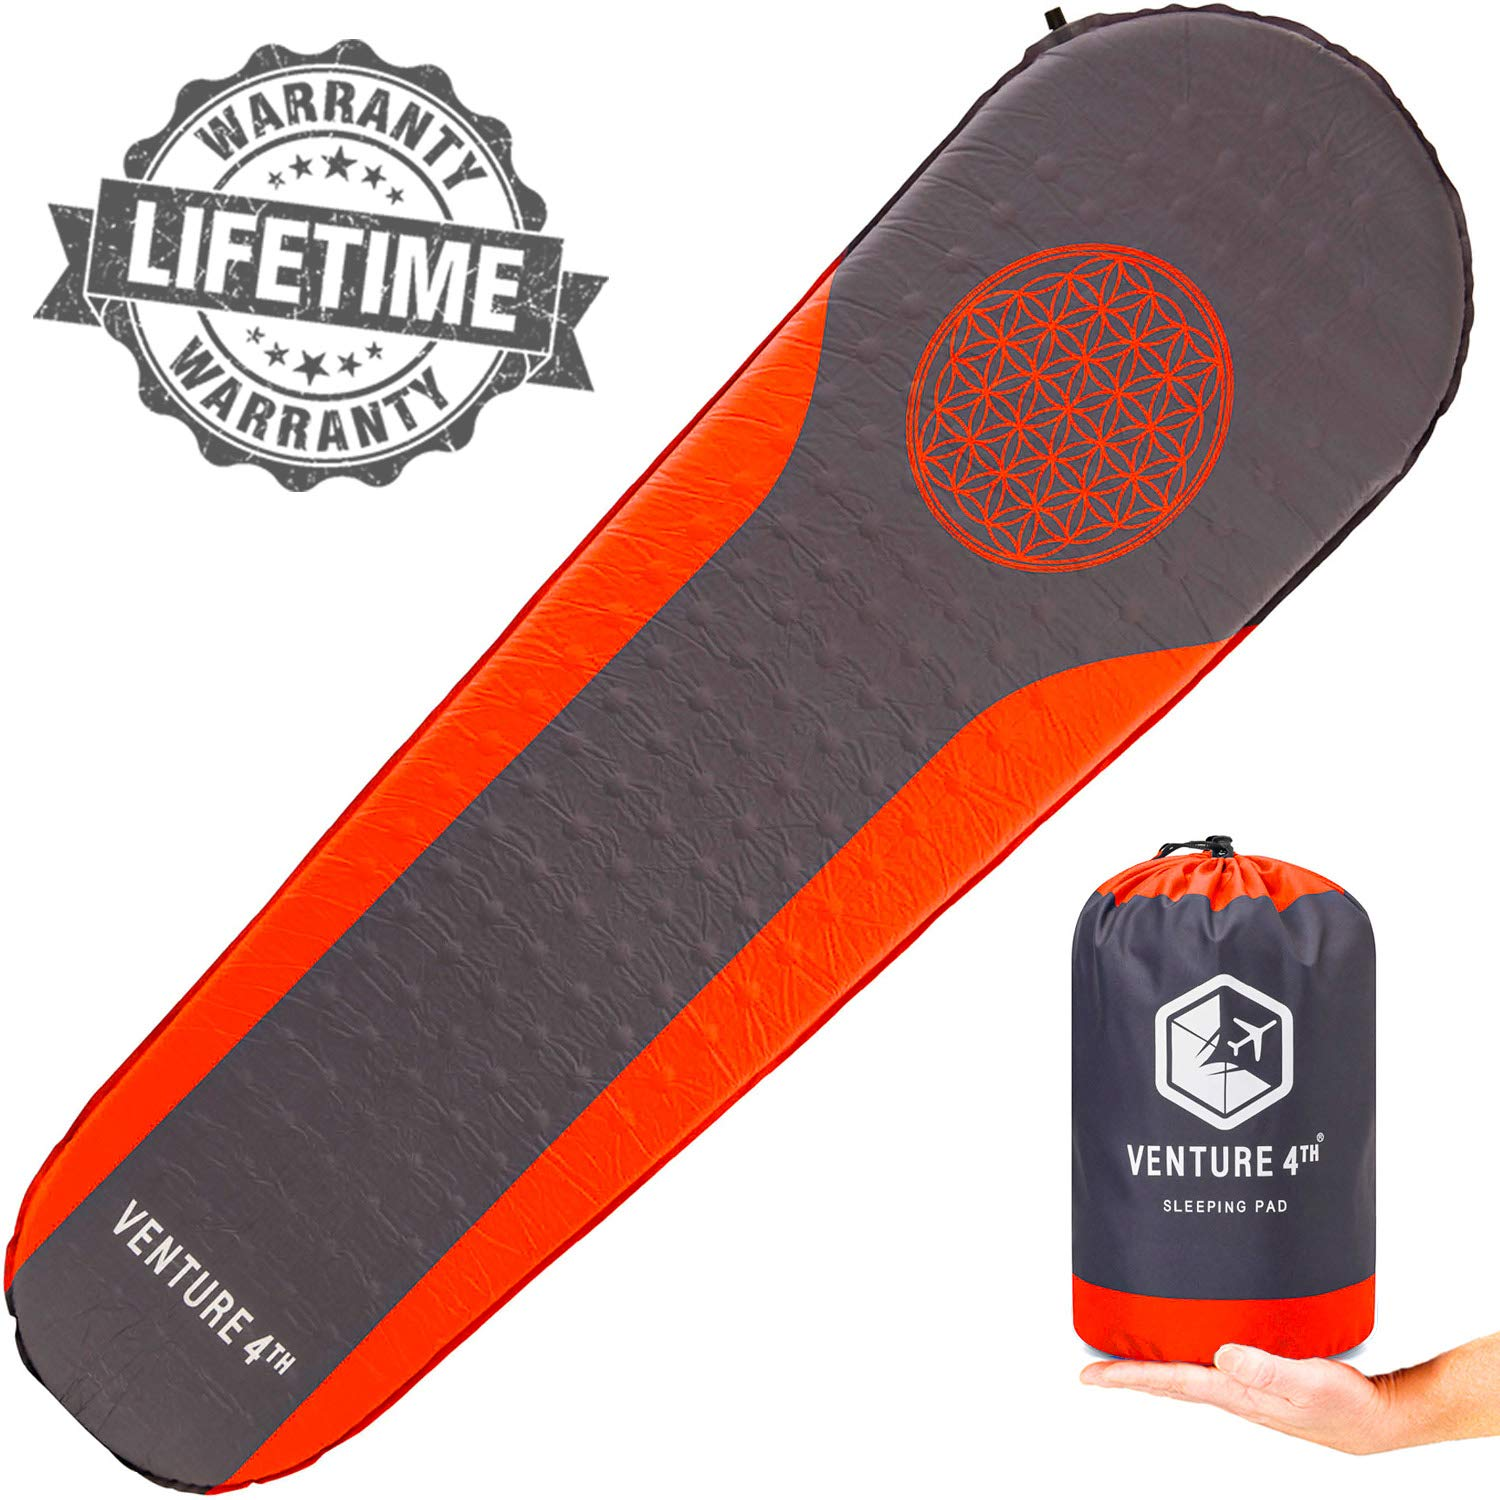 VENTURE 4TH Camping Sleeping Pad - No Pump or Lung Power Required - Warm, Quiet and Supportive Camp Mat for Hiking and Backpacking - Compact Camp Sleep Pad (Red/Gray) by VENTURE 4TH